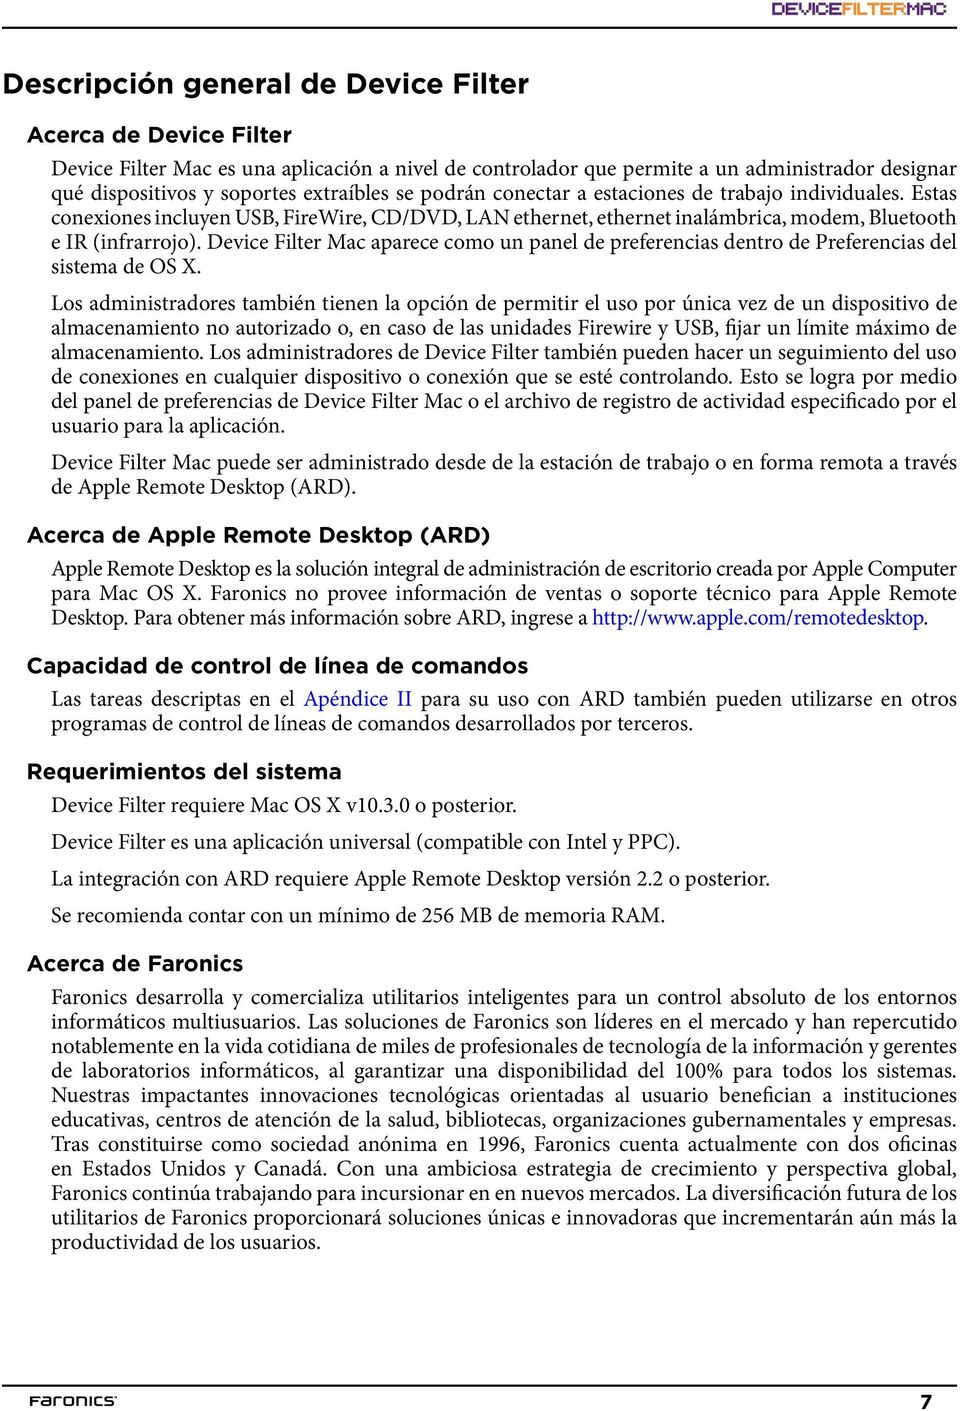 Device Filter Mac aparece como un panel de preferencias dentro de Preferencias del sistema de OS X.